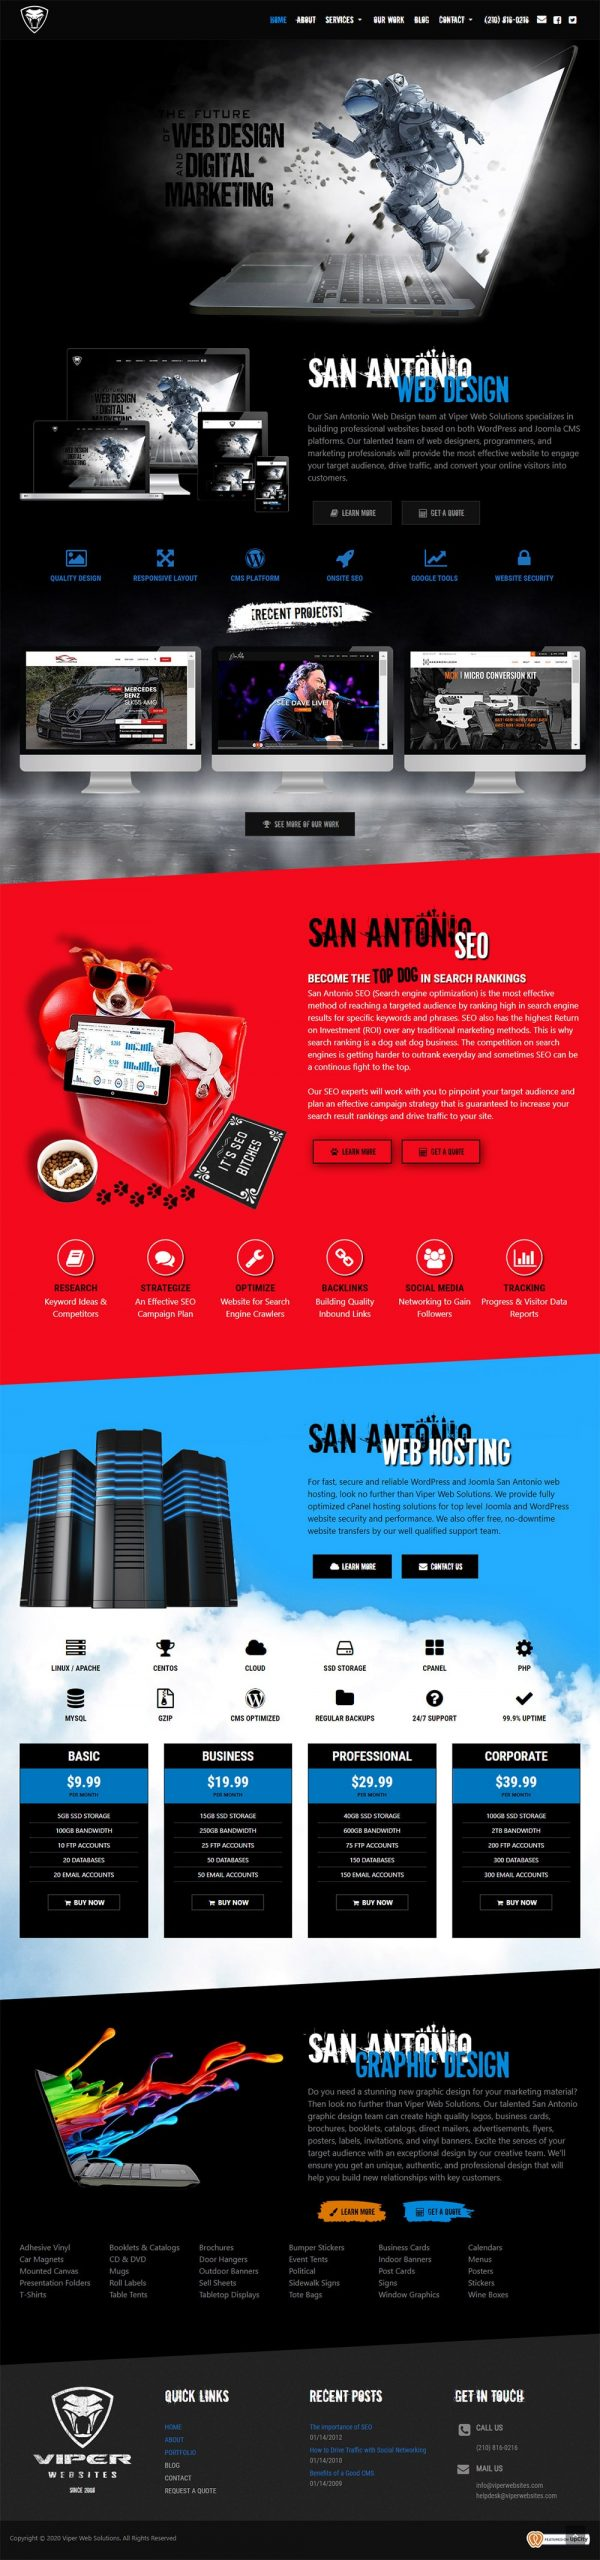 San Antonio Web Design - Viper Web Solutions